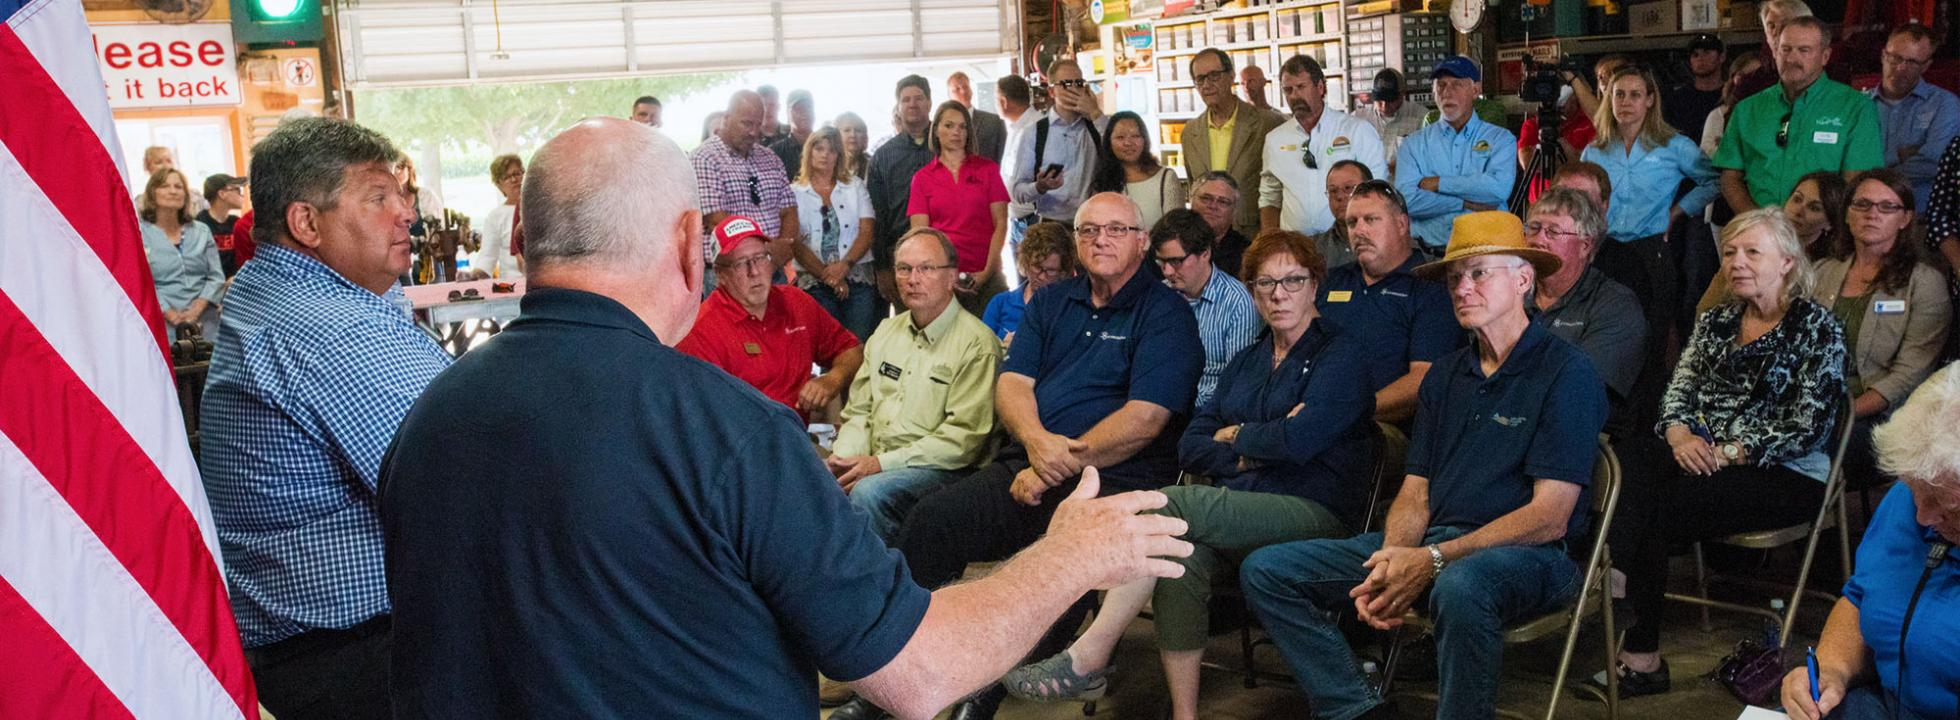 Secretary Perdue speaks to a group of Farmers